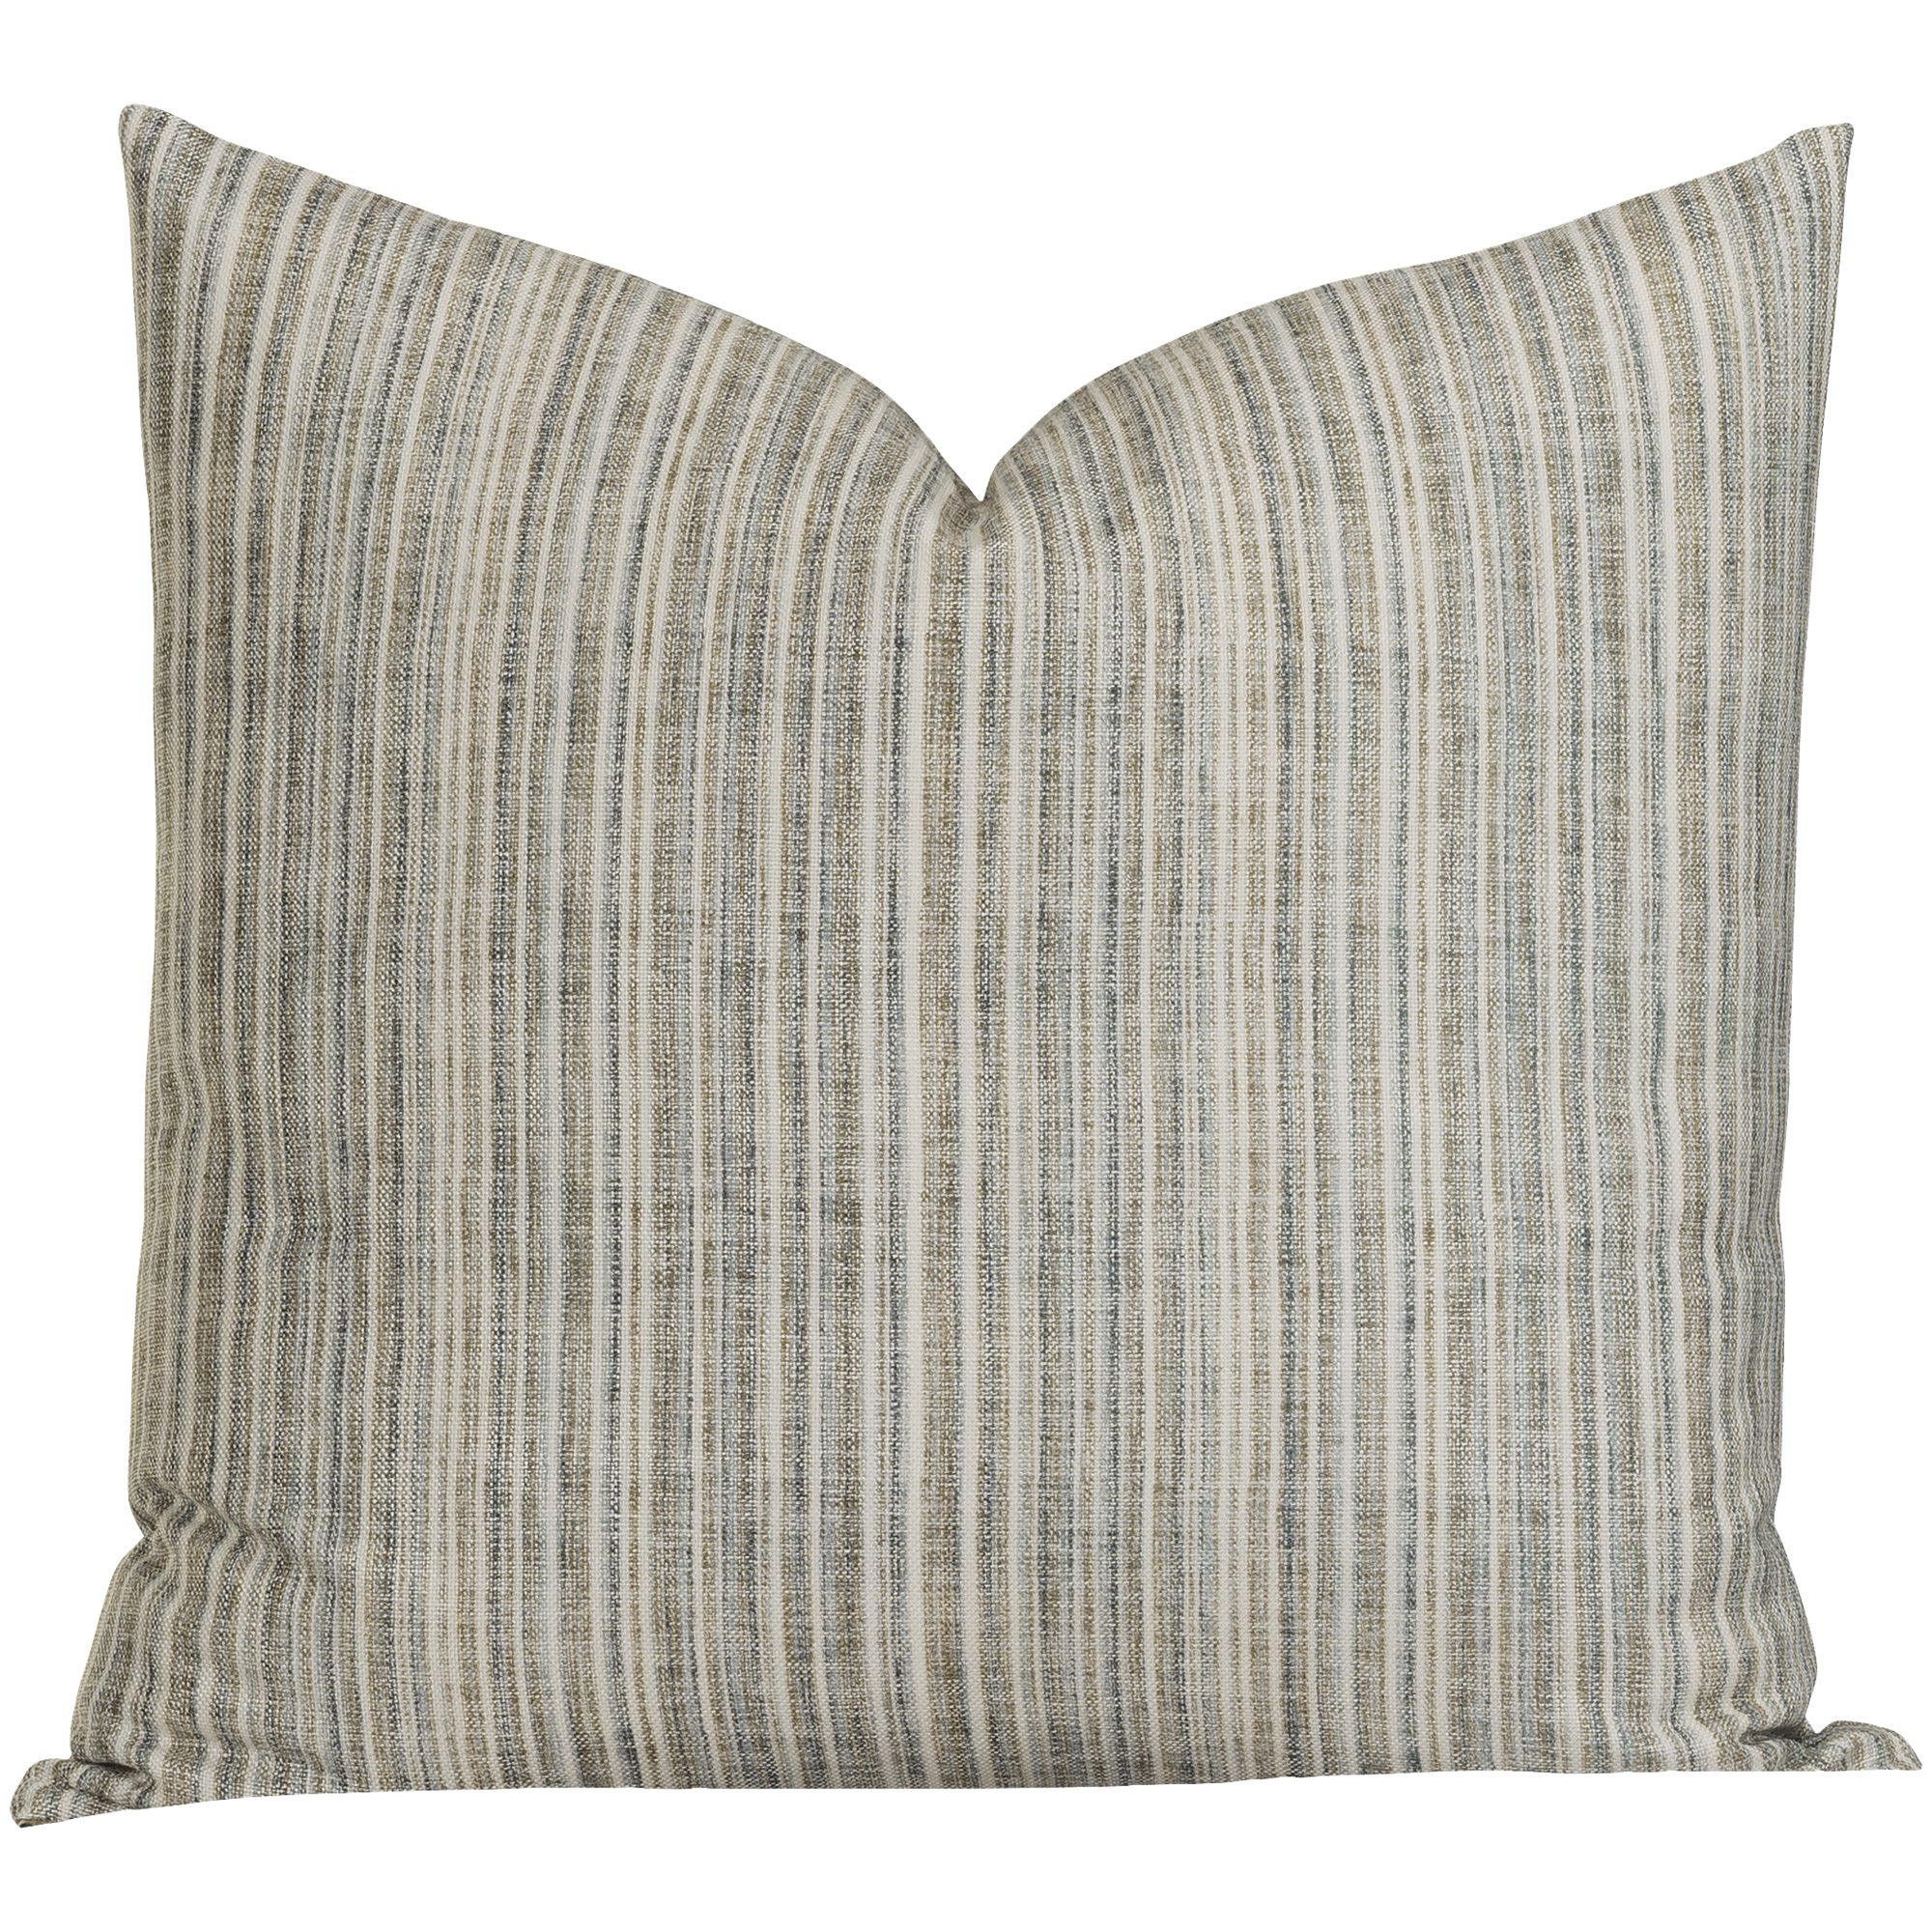 Sis Enterprises | Bungalow Stripe Beige Euro Pillow